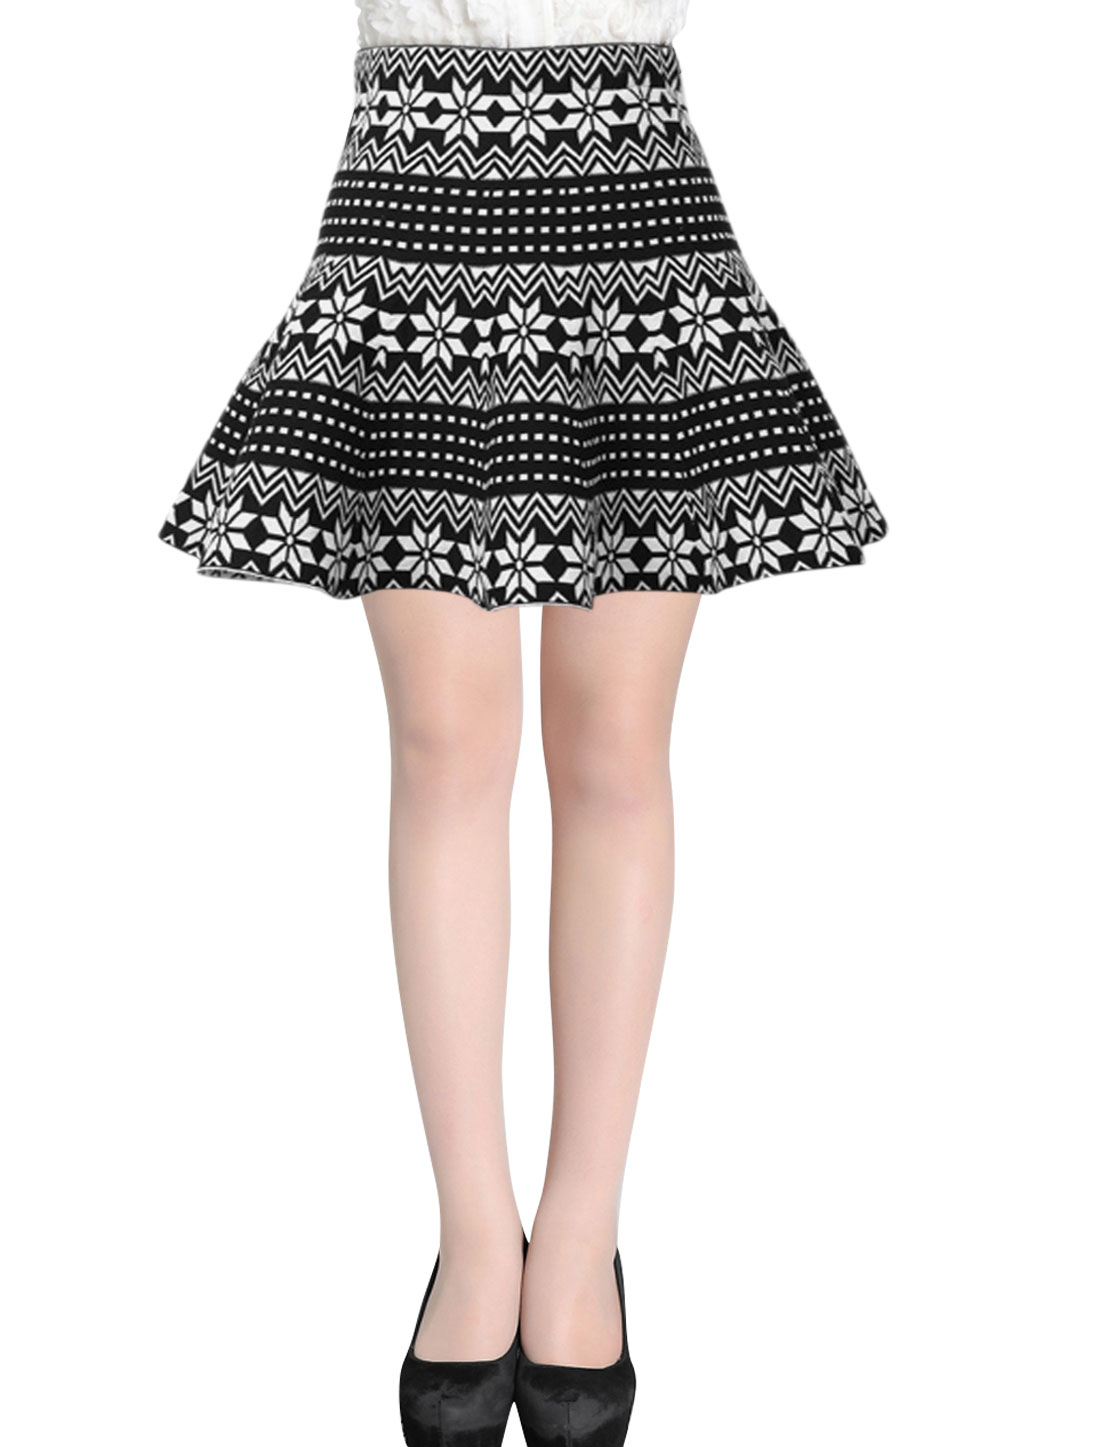 Women High Waist Snowflake Pattern Knit Full Skirt Black White XS